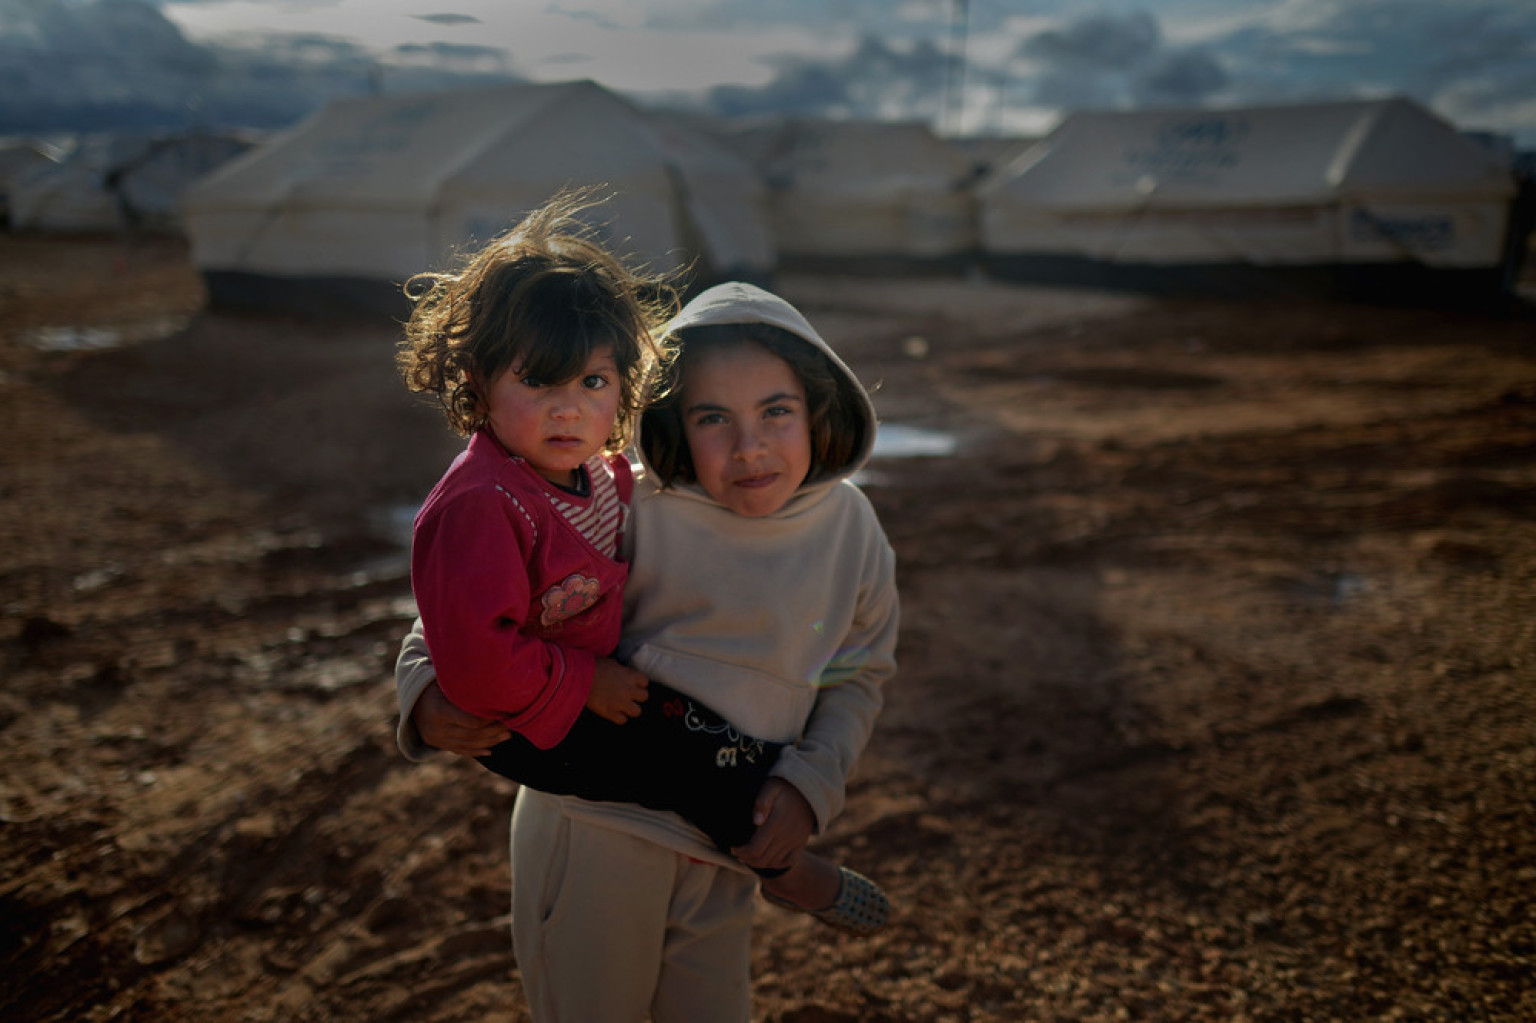 Protecting refugee children is a test of our humanity